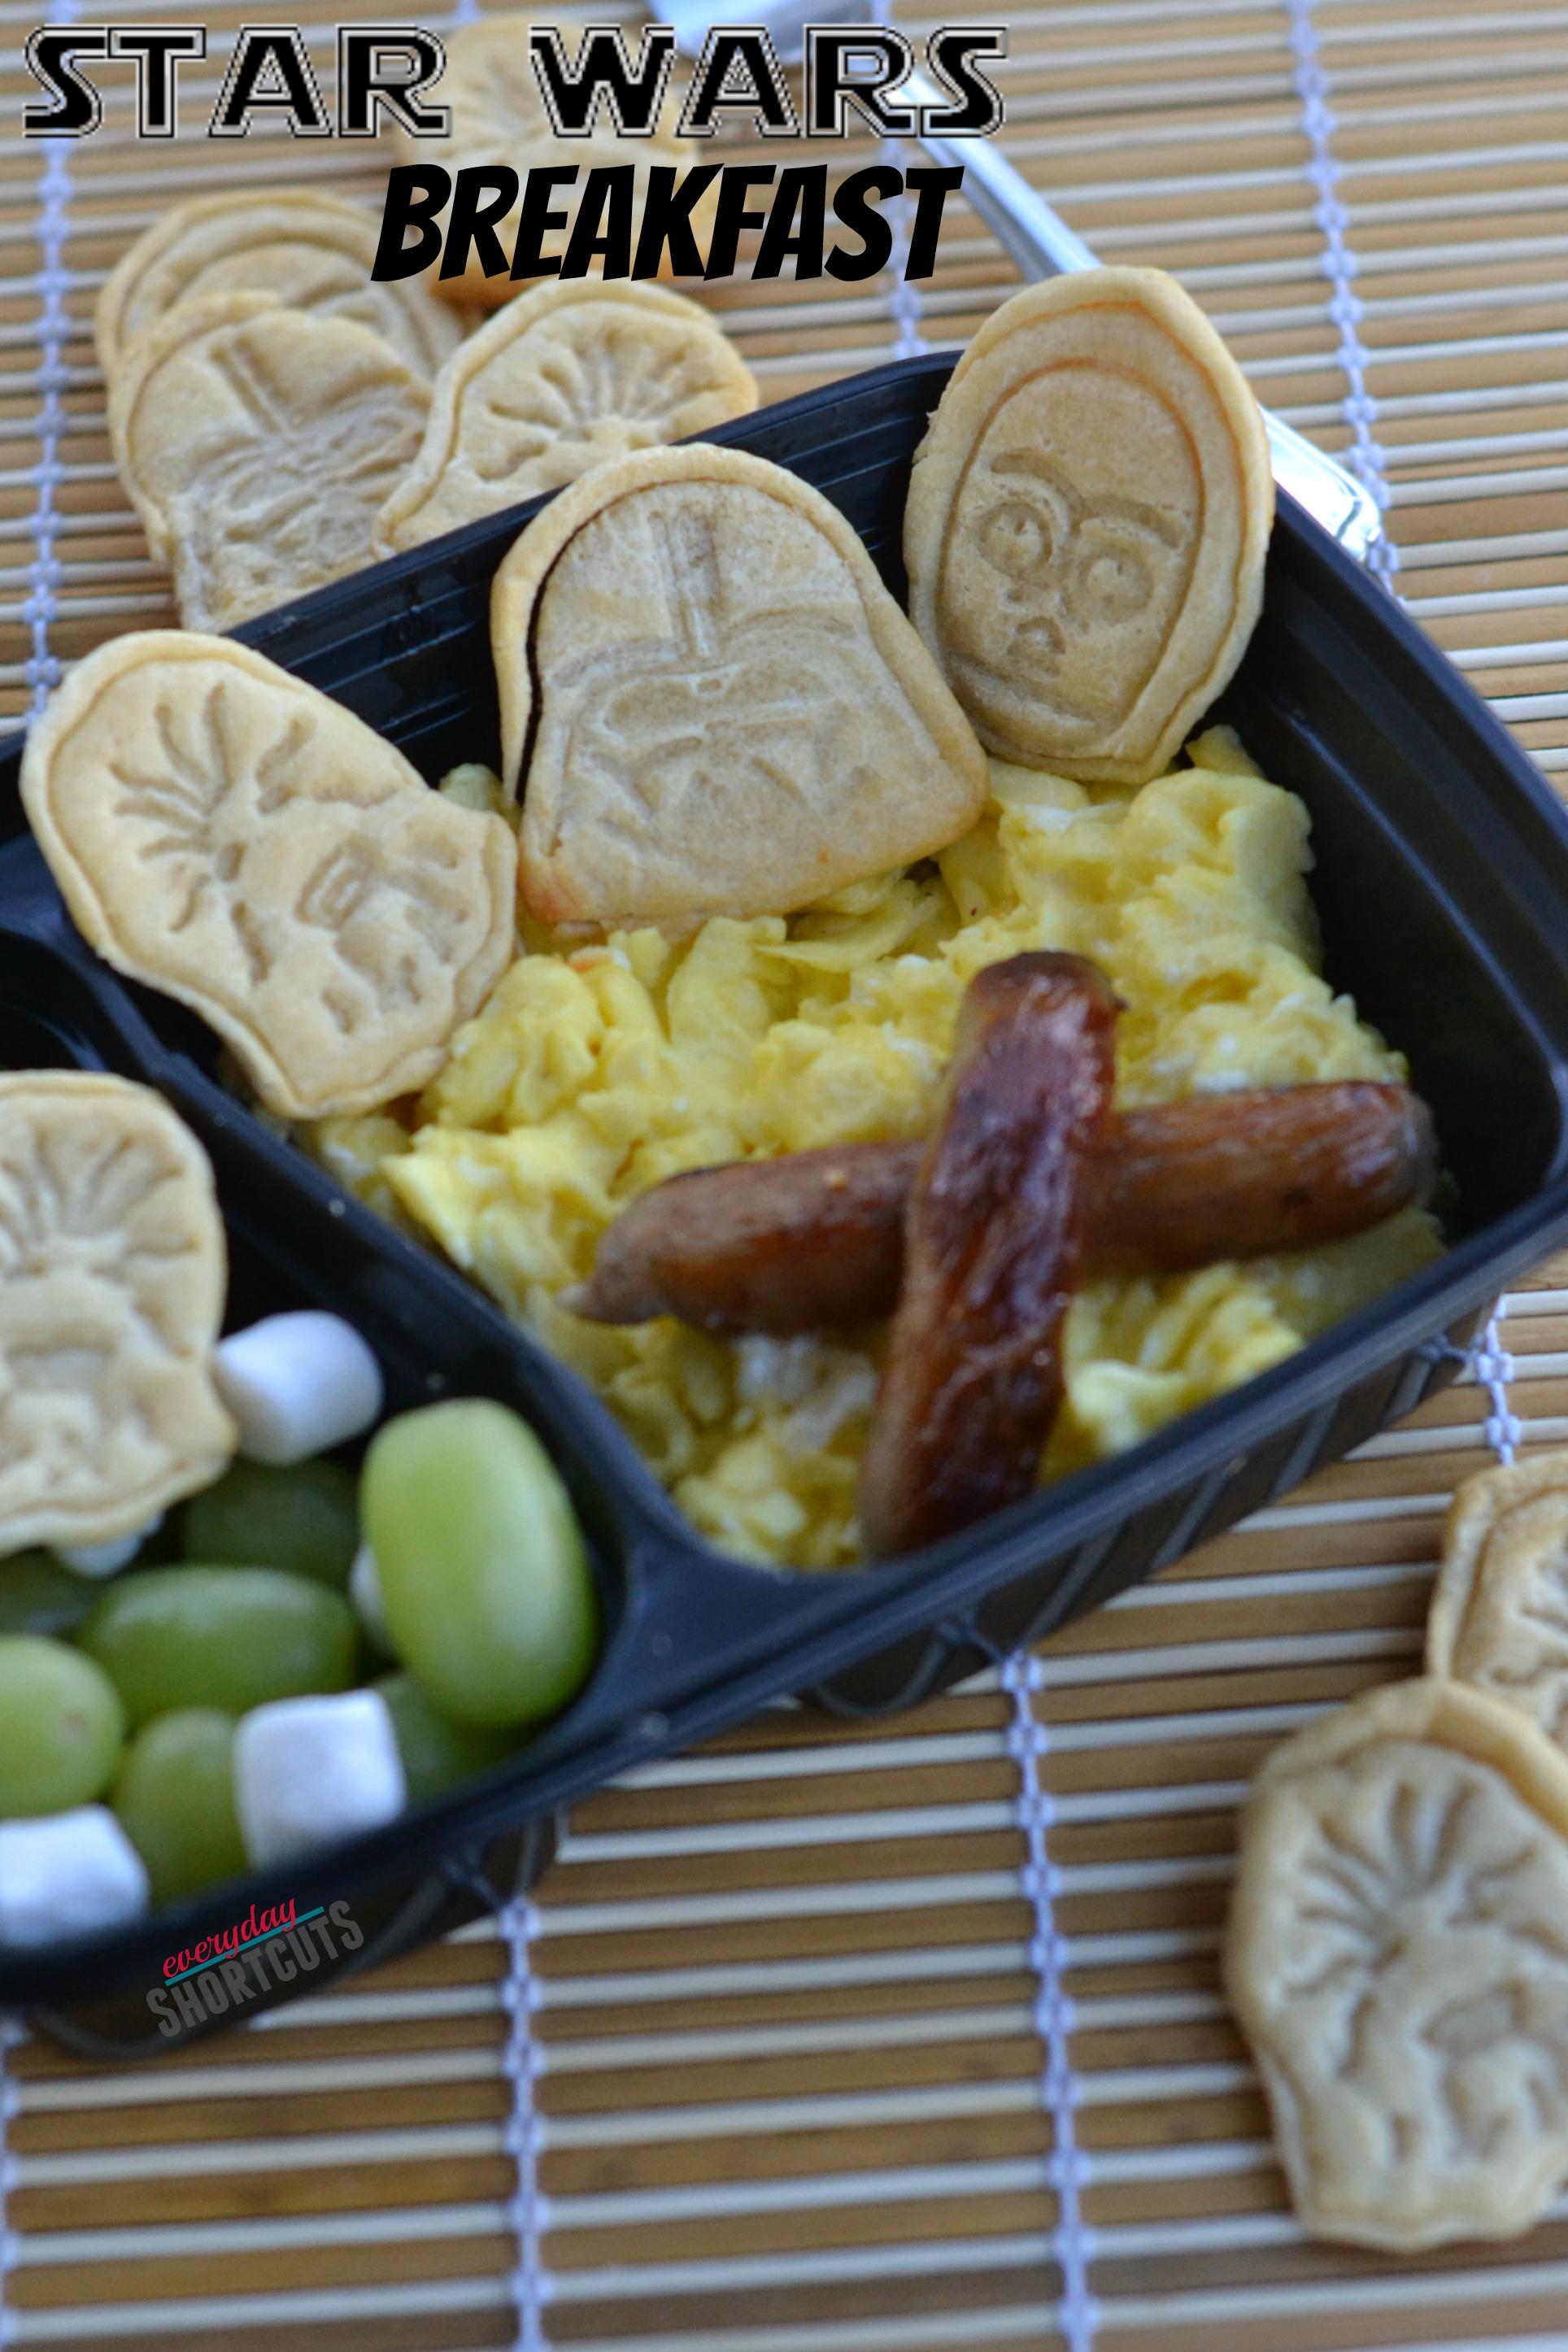 Star Wars Breakfast idea